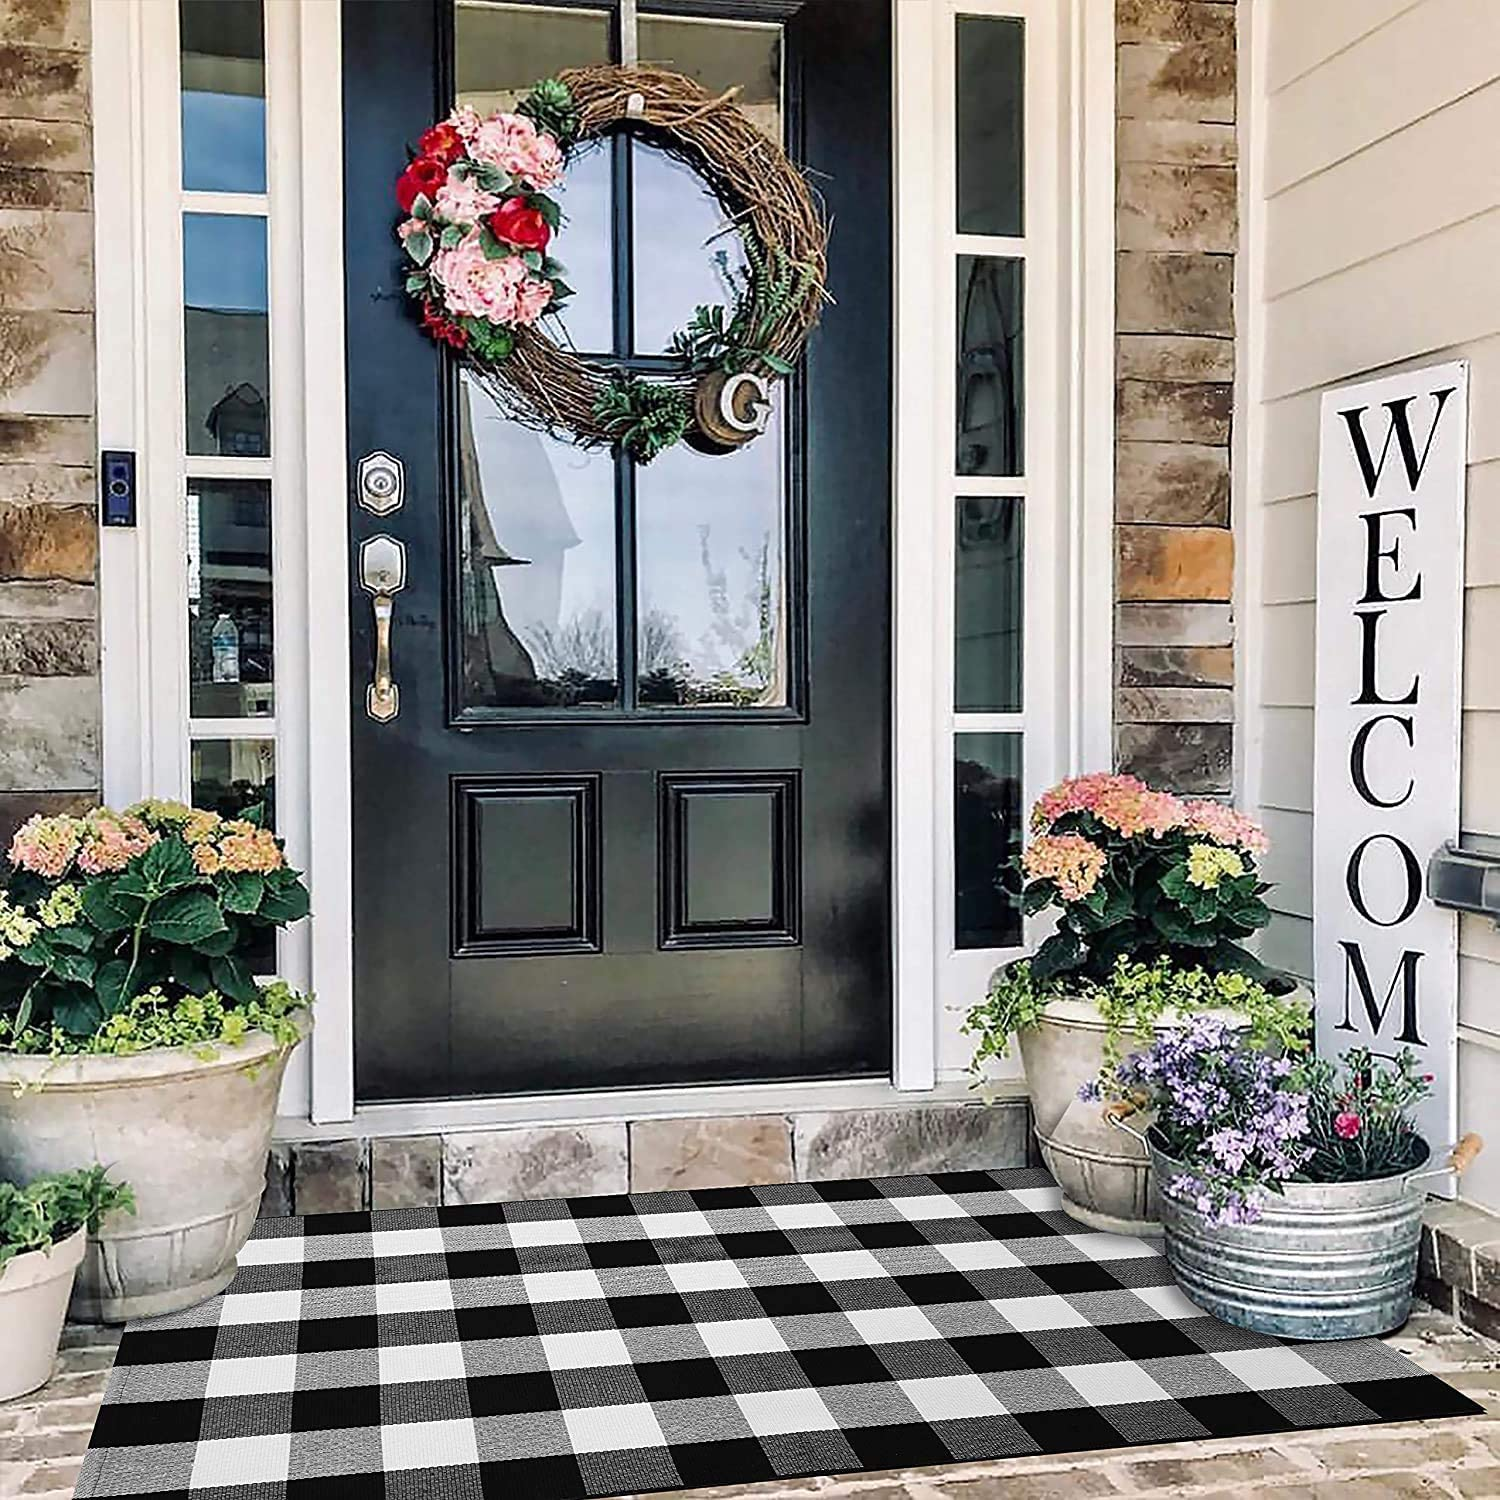 EARTHALL Buffalo Plaid Rug Outdoor 3'x 5' , Cotton Hand-Woven Checkered Door Mat, Washable Outdoor Rug Farmhouse/Kitchen/Front Porch/Living Room/Laundry Room/Bedroom (35.4''x59'')